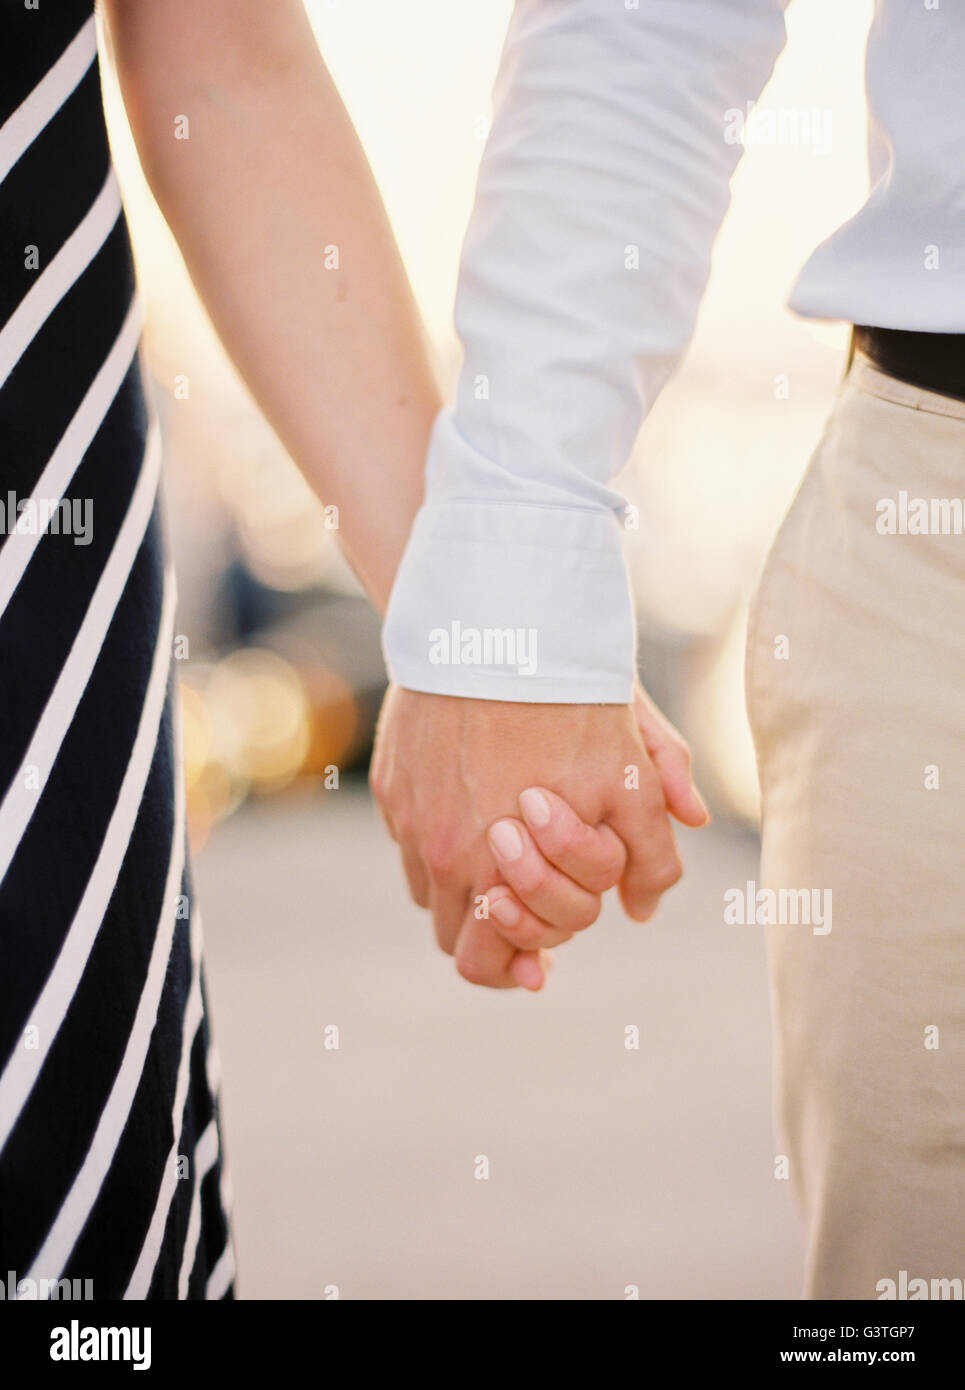 Sweden, Halland, Couple holding hands - Stock Image